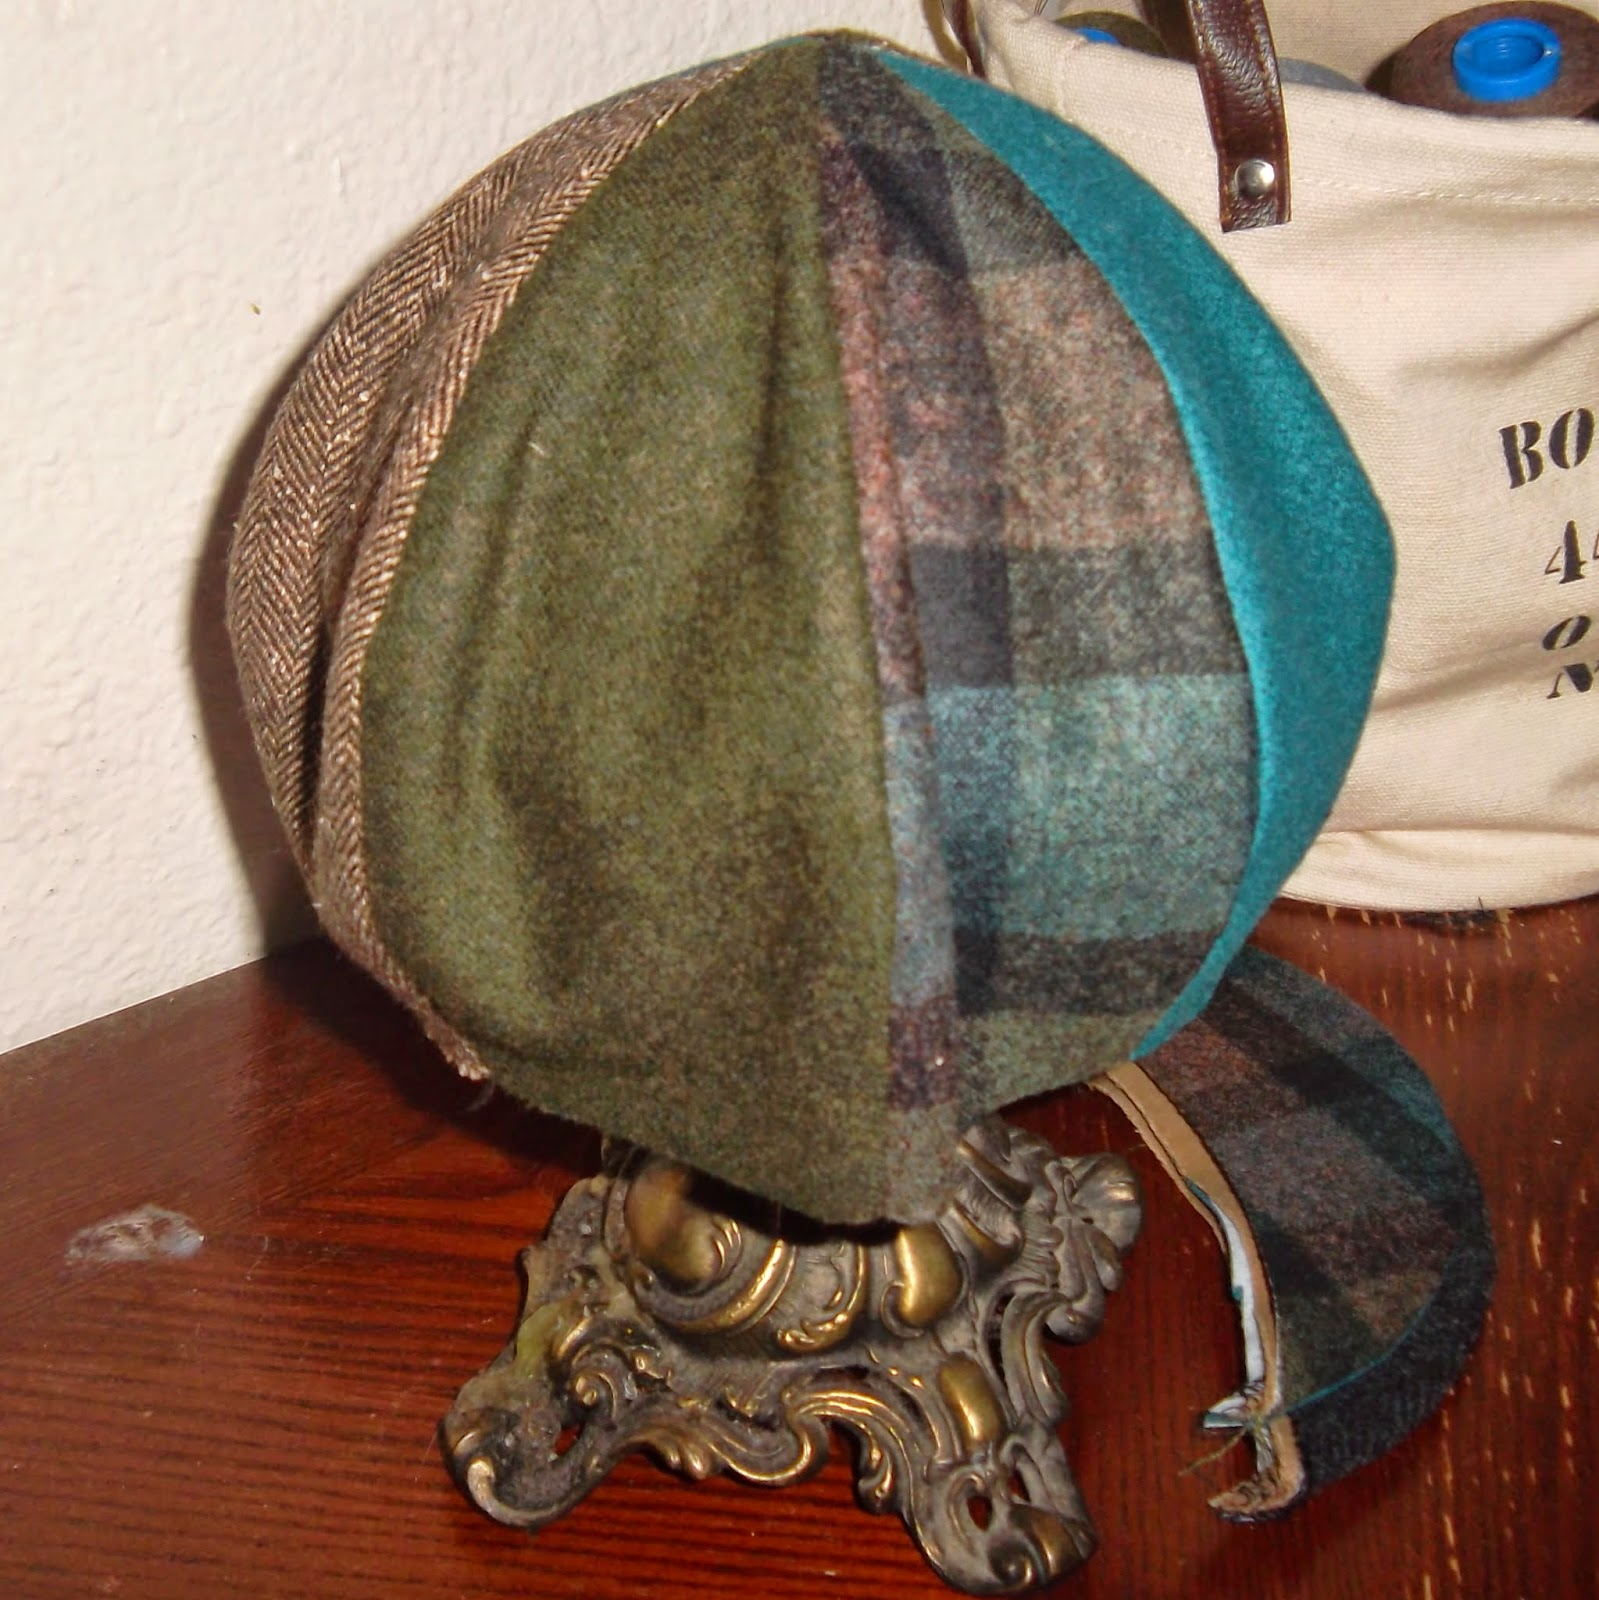 Eight-paneled crown of hat draped over metal hatstand. From left to right, the four panels visible in photo are brown houndstooth, dark-green solid, green-and-brown plaid and teal solid. A brown-and-green plaid, crescent-shaped bill is on tabletop at base of hat-stand. A second bill, beneath it, is of black herringbone.